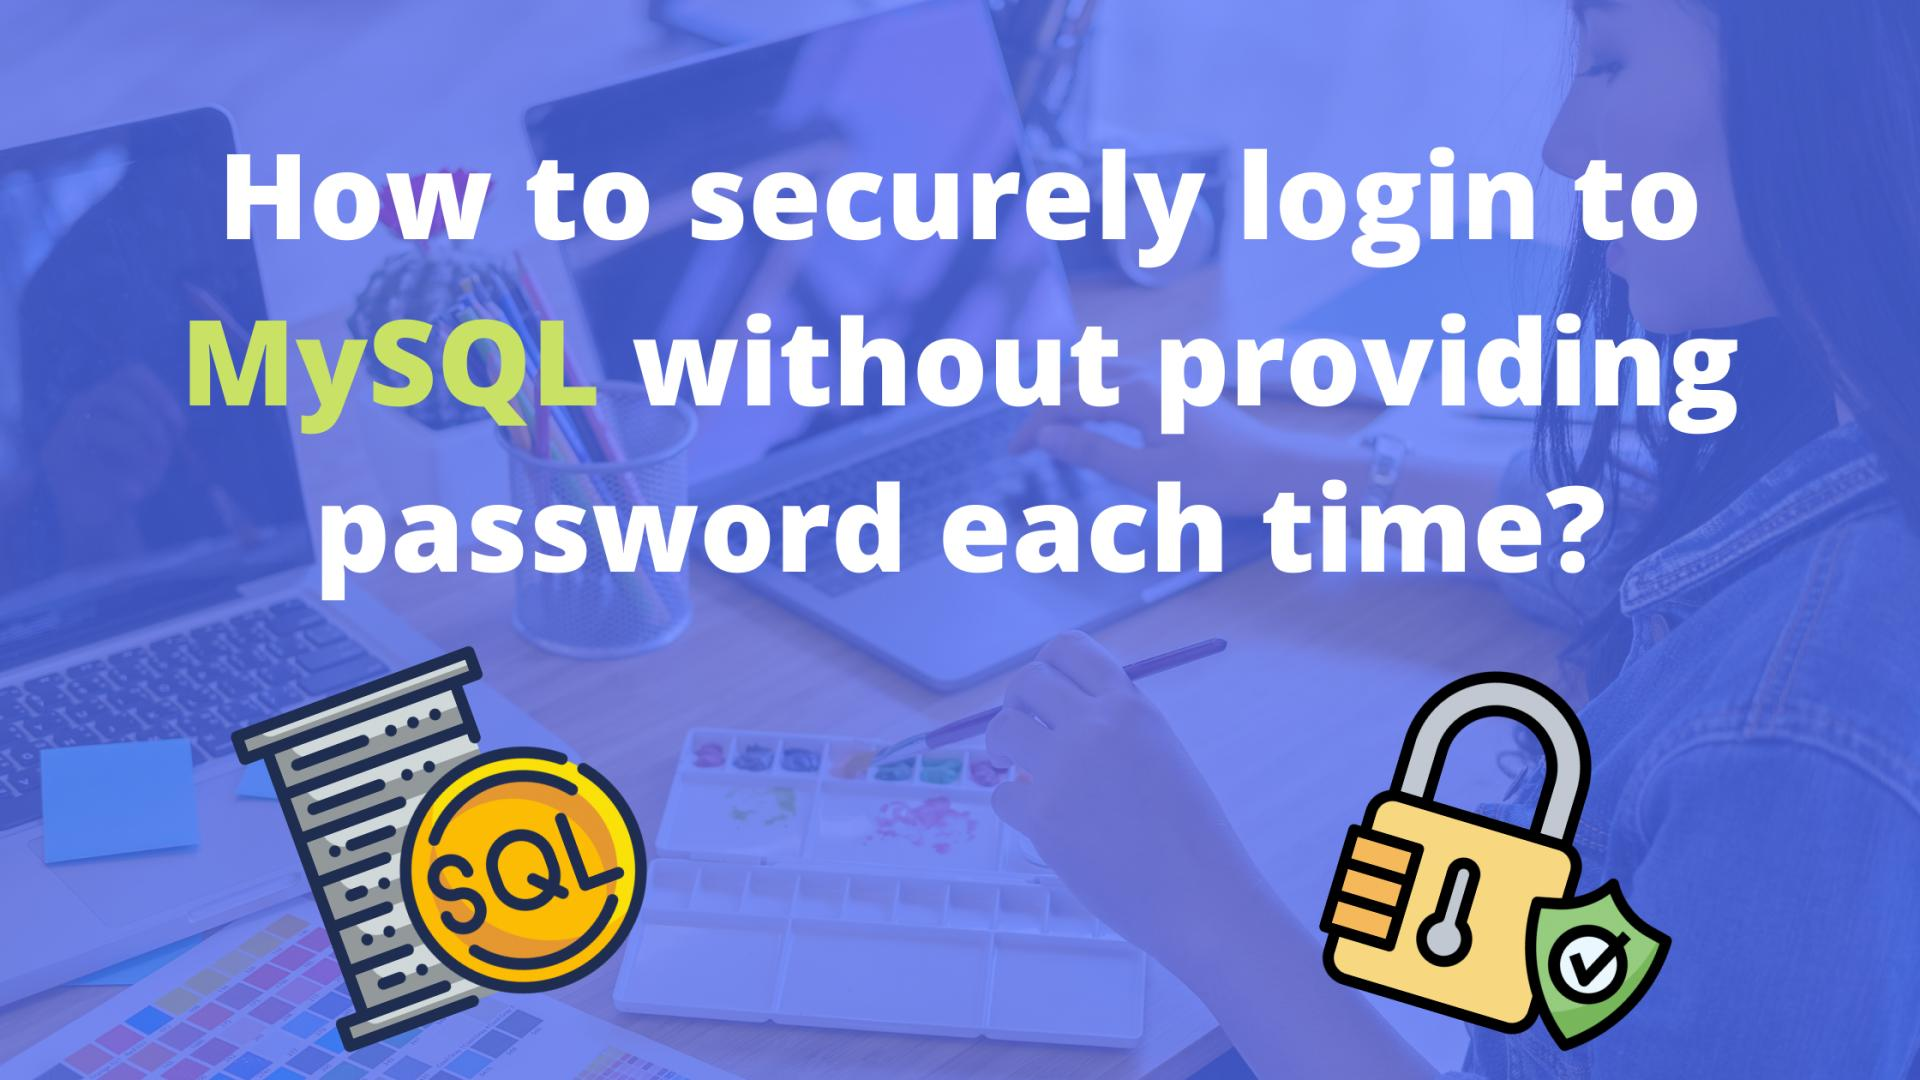 How to securely login to MySQL without providing password each time?